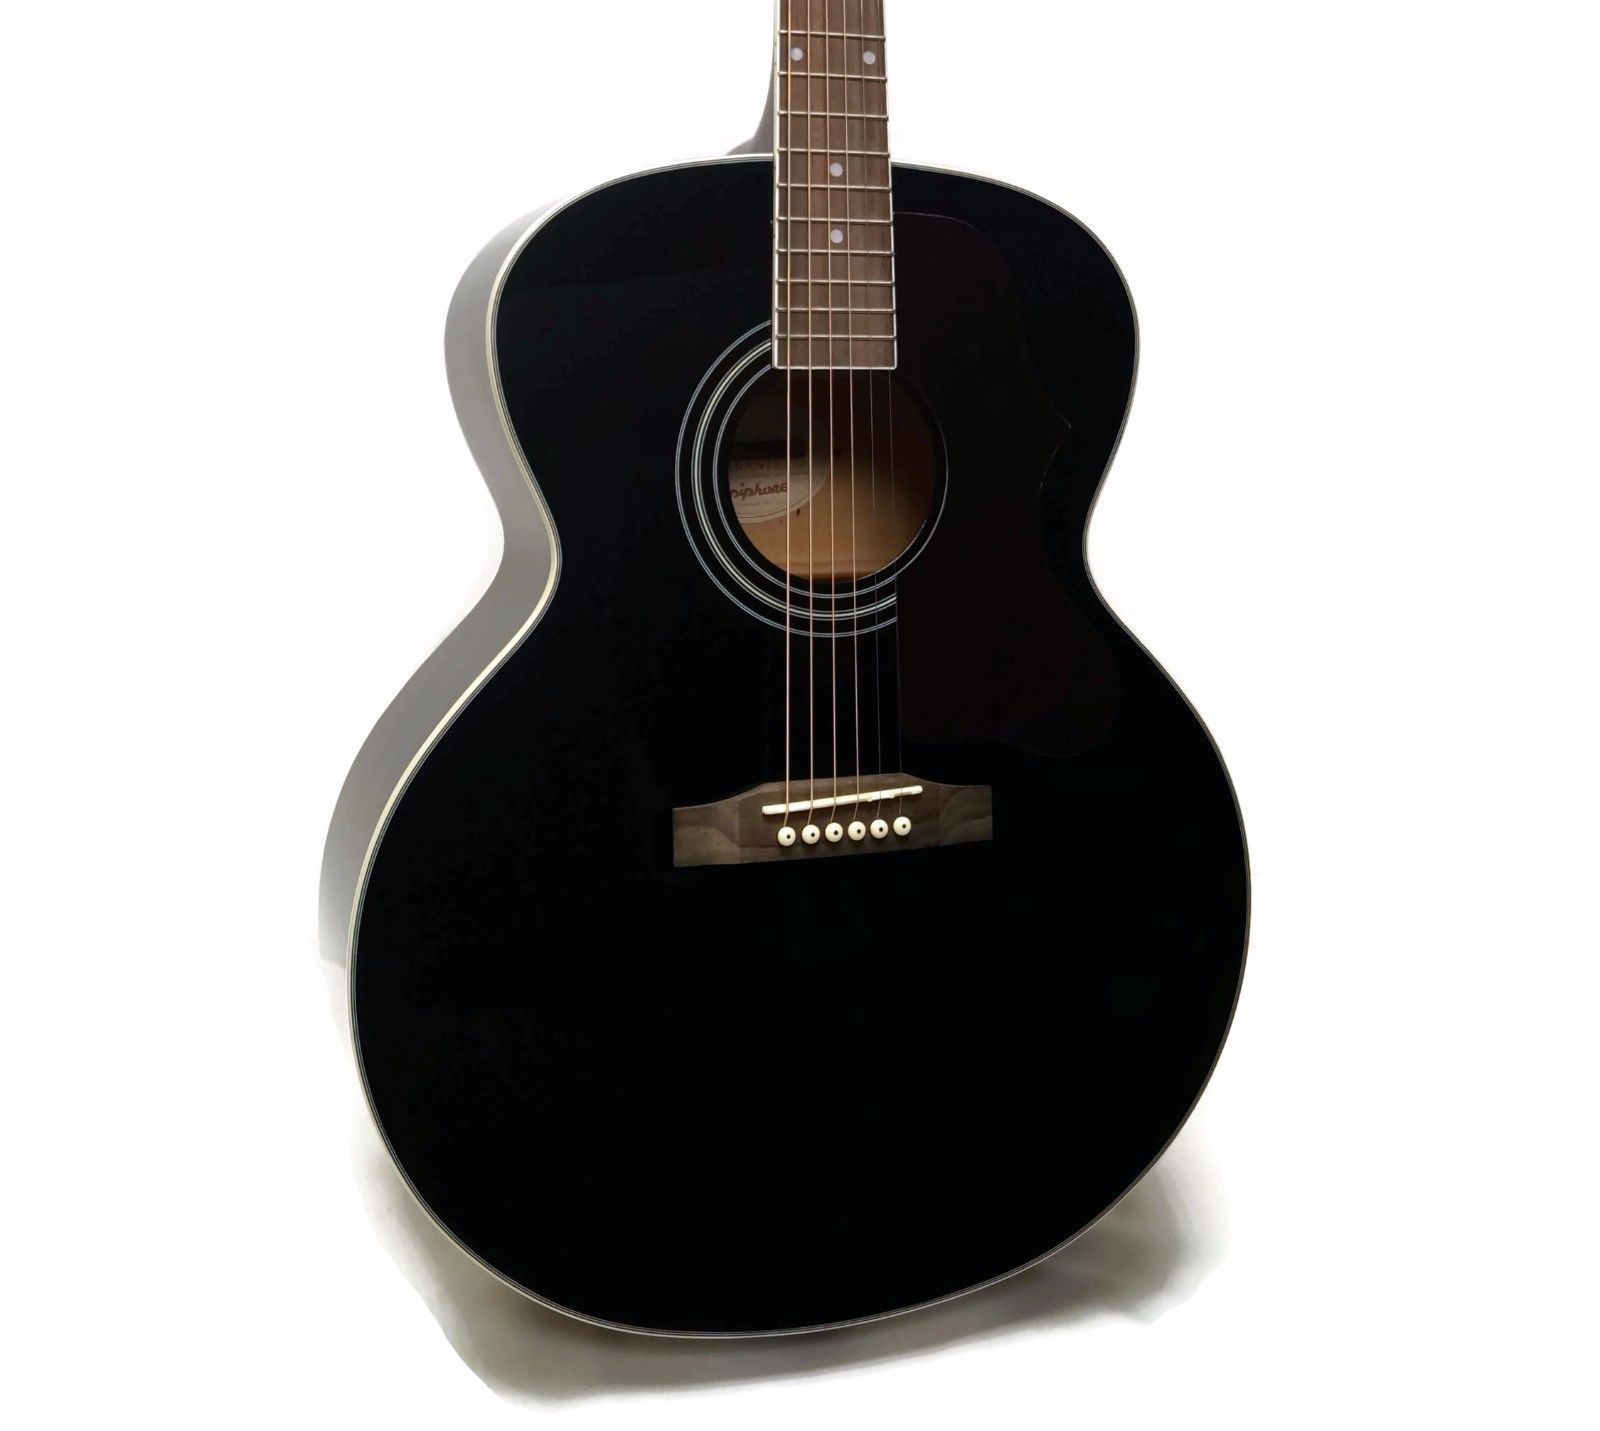 epiphone ej 200 artist limited edition jumbo acoustic guitar ebony